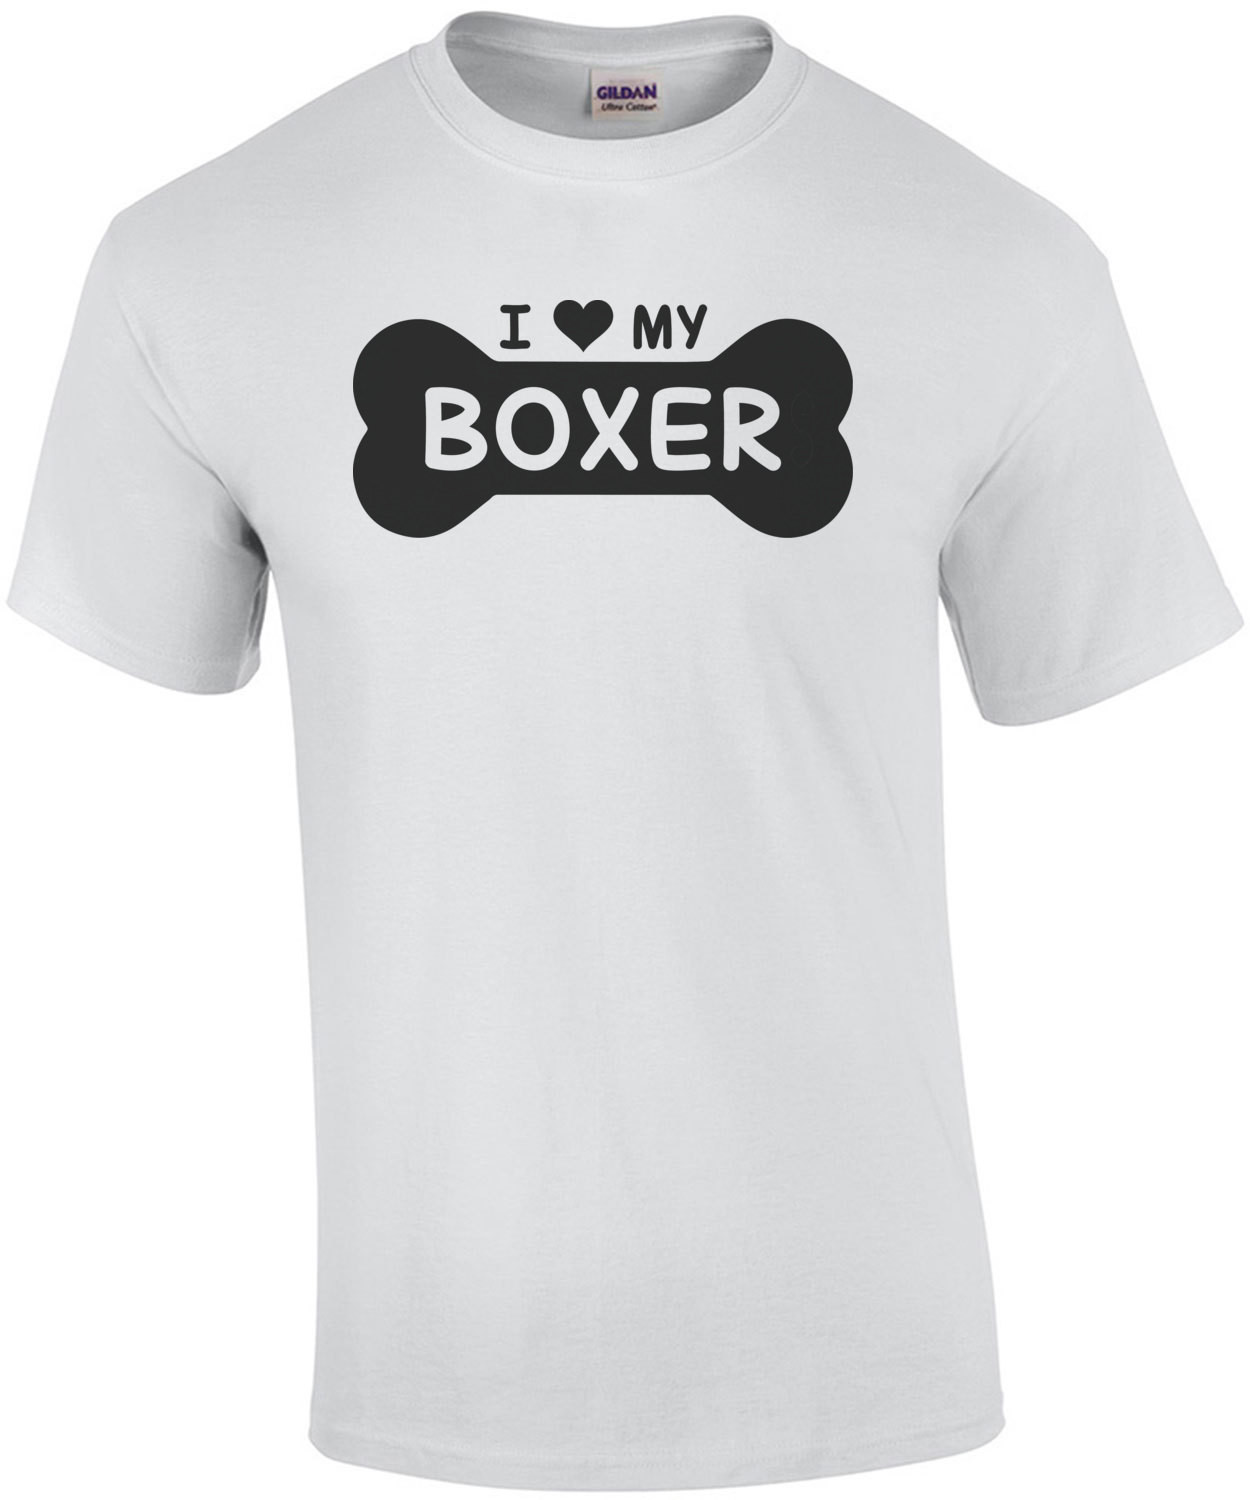 I love my boxer - dog bone - boxer t-shirt